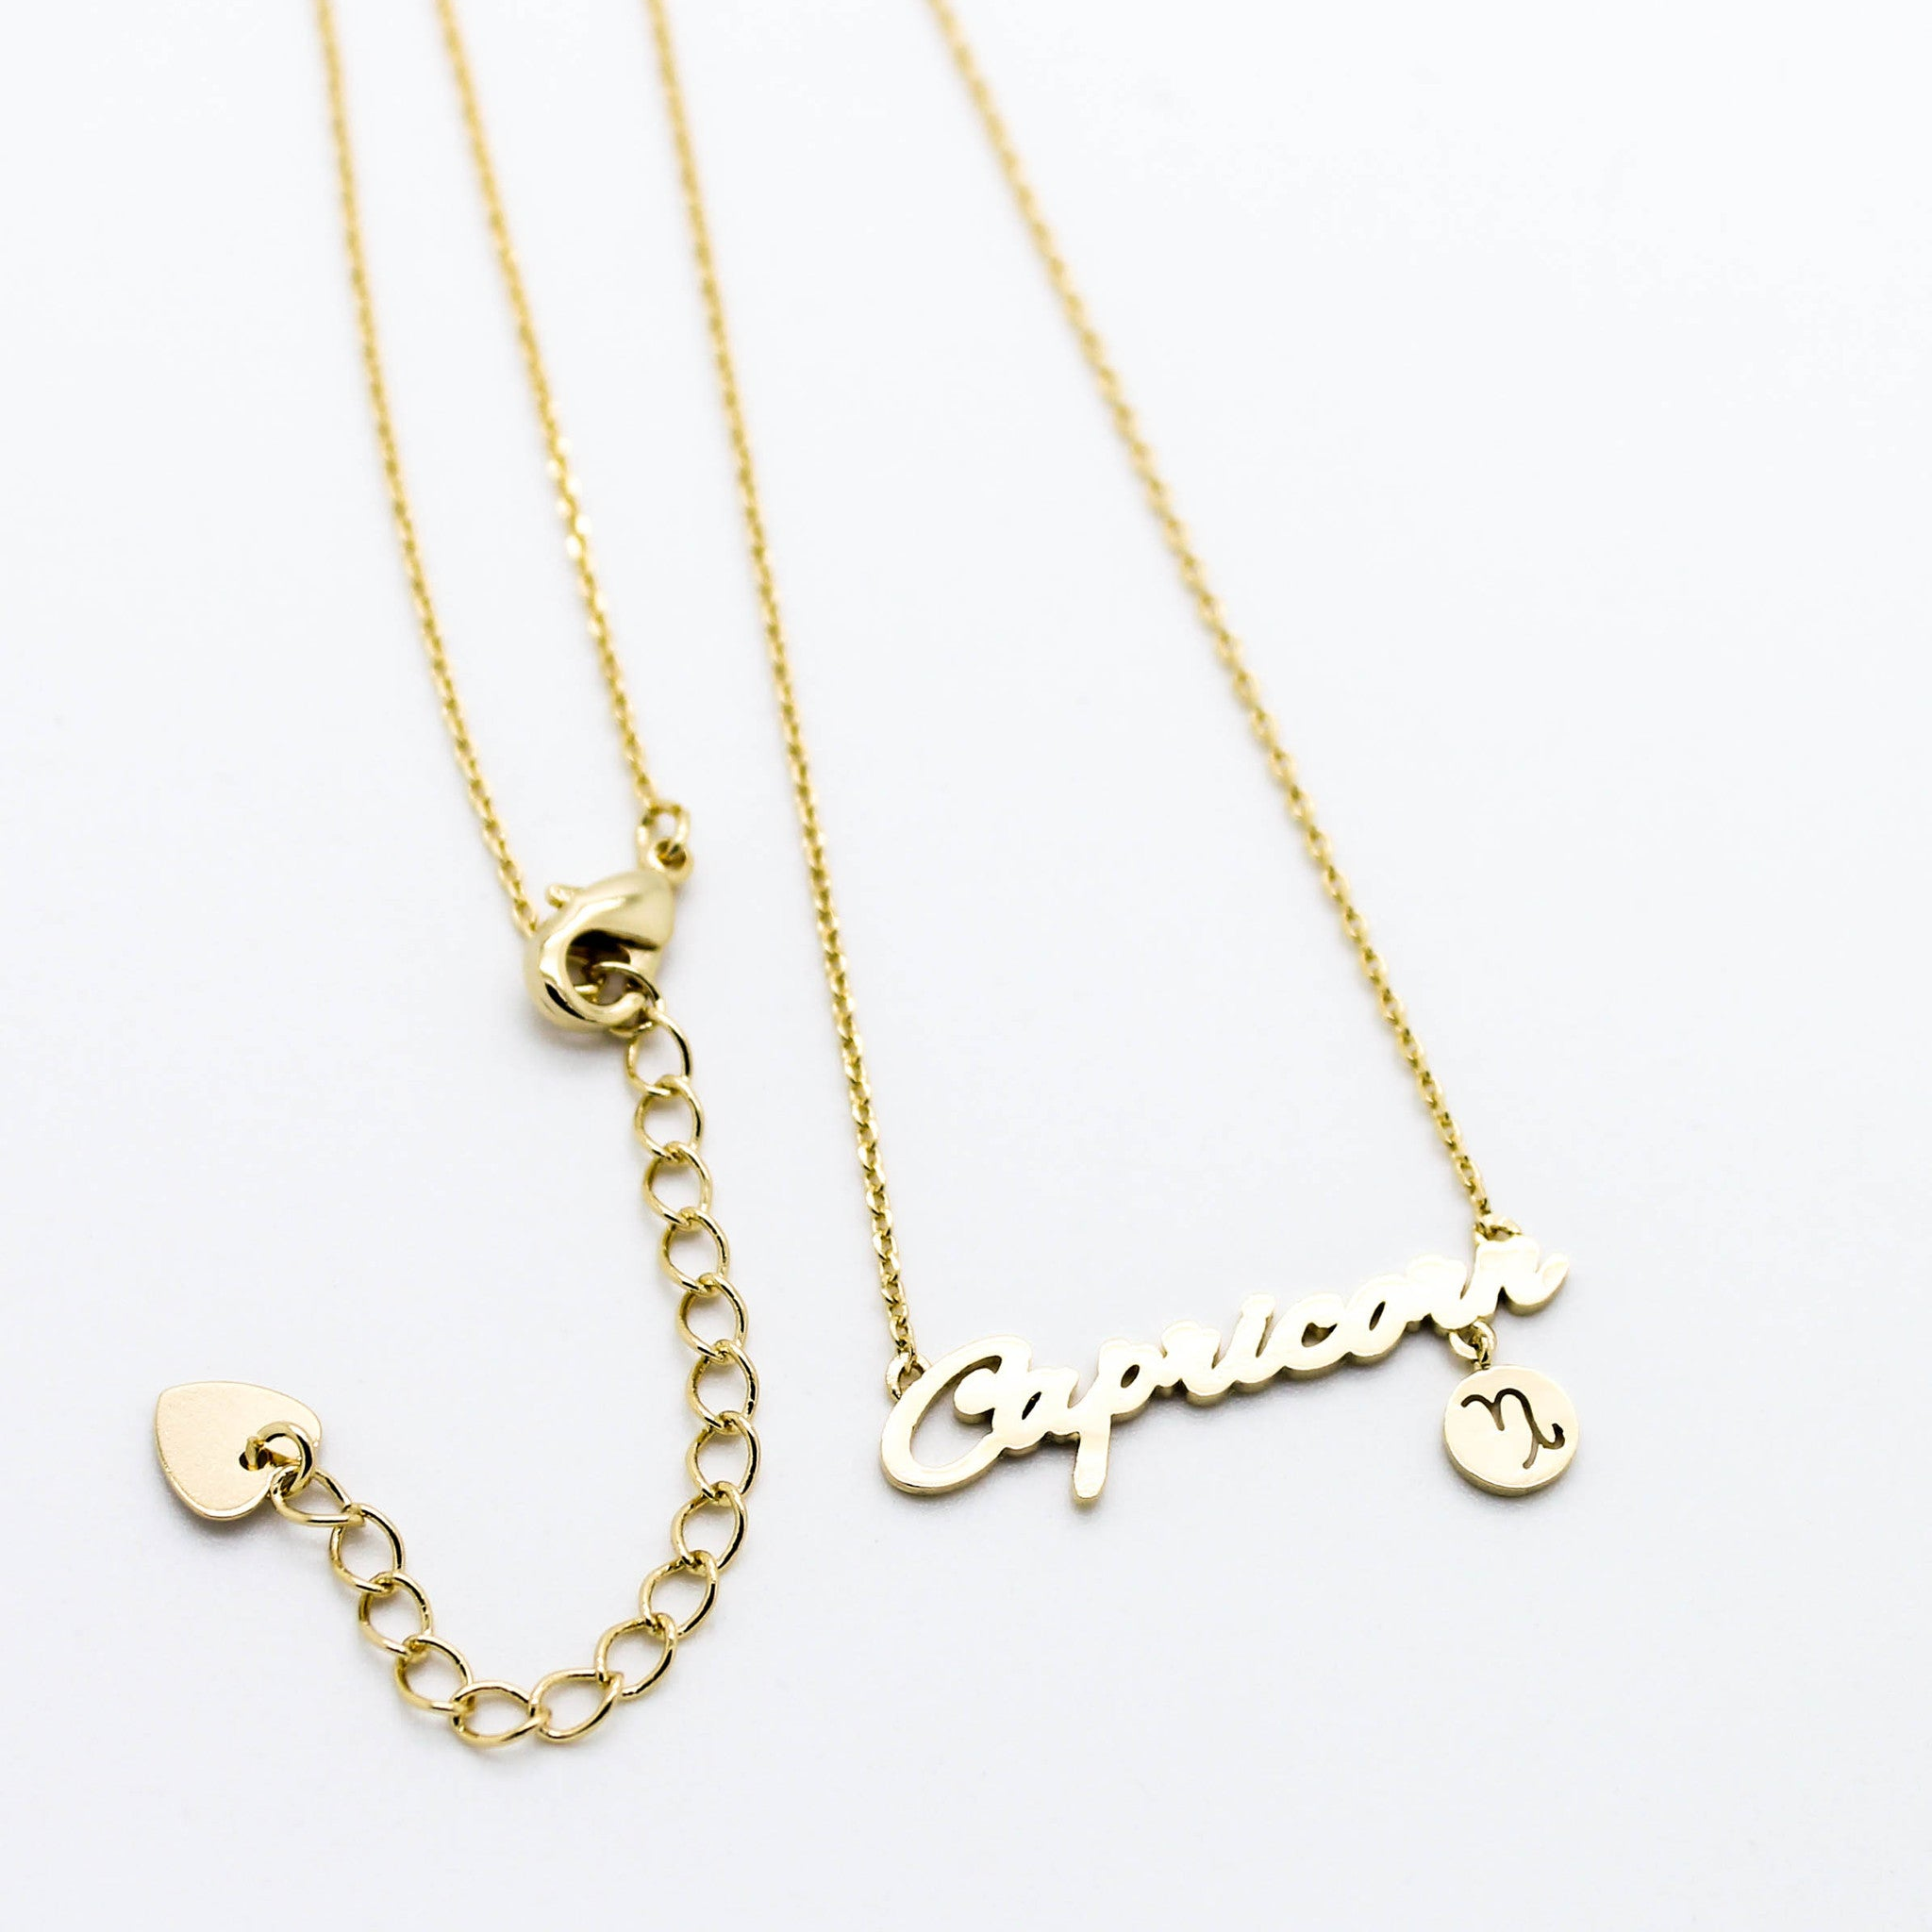 yellow letters bespoke necklace gold necklaces for sign the rings luxury best star trans jewellery diamond chain personalised christmas initial from annoushka aphrodite